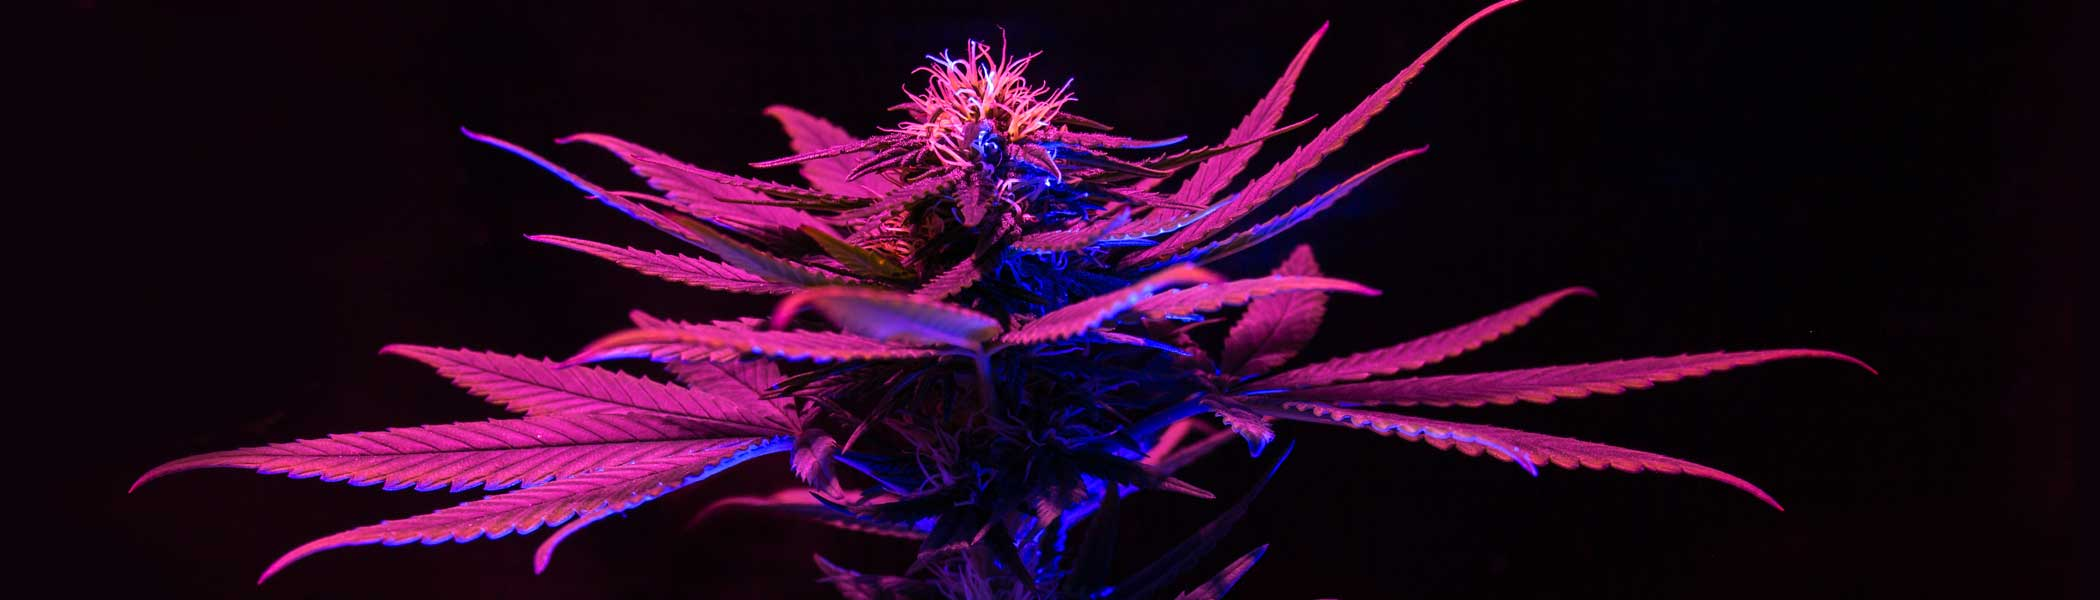 Marijuana plant under a grow light giving it a purple glow in the Cannabis Industry